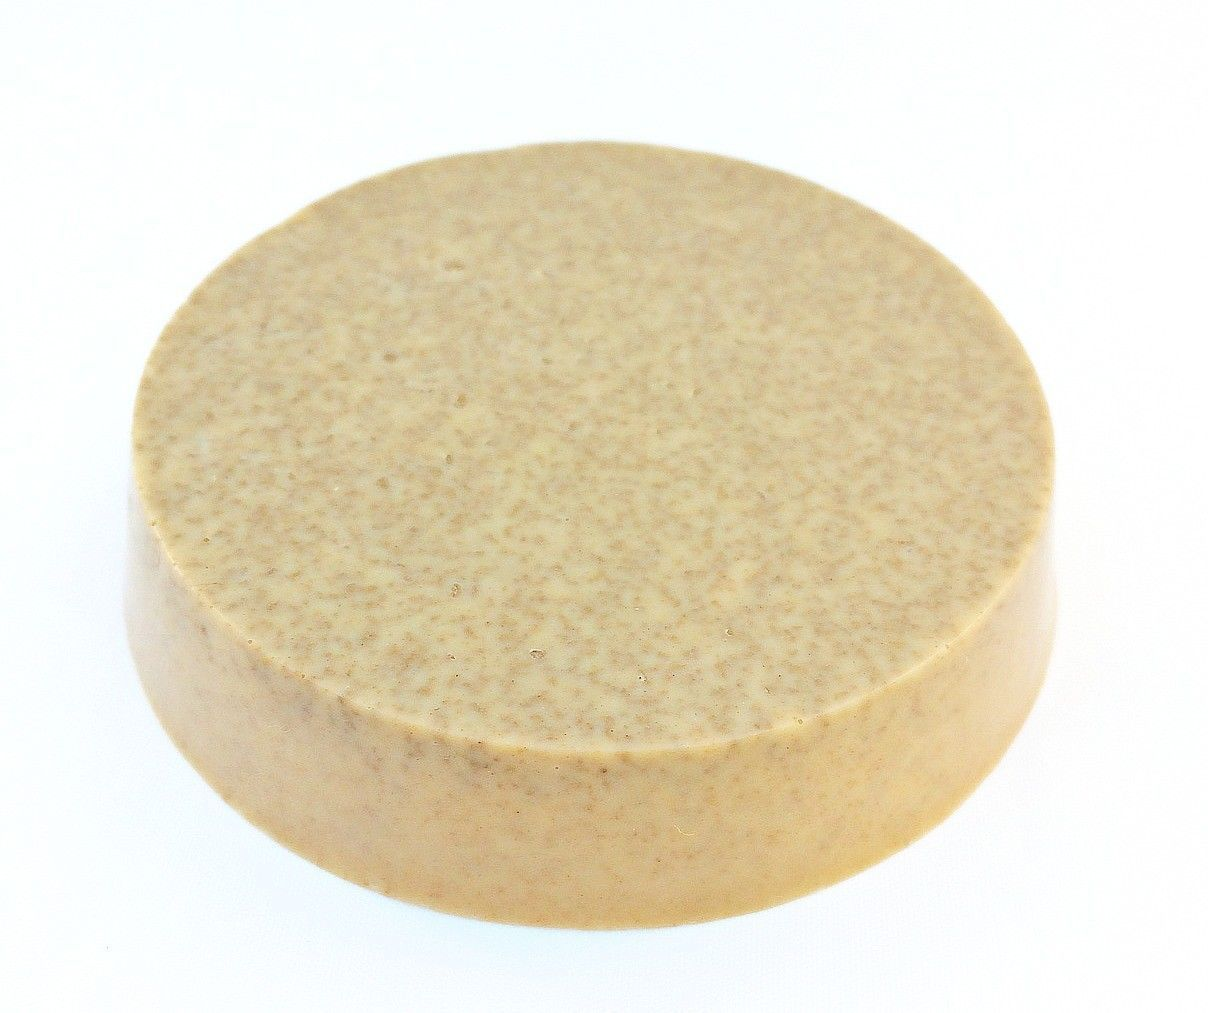 Vaginal itch odor Soap Cleanser irritation burning, organic natural relief